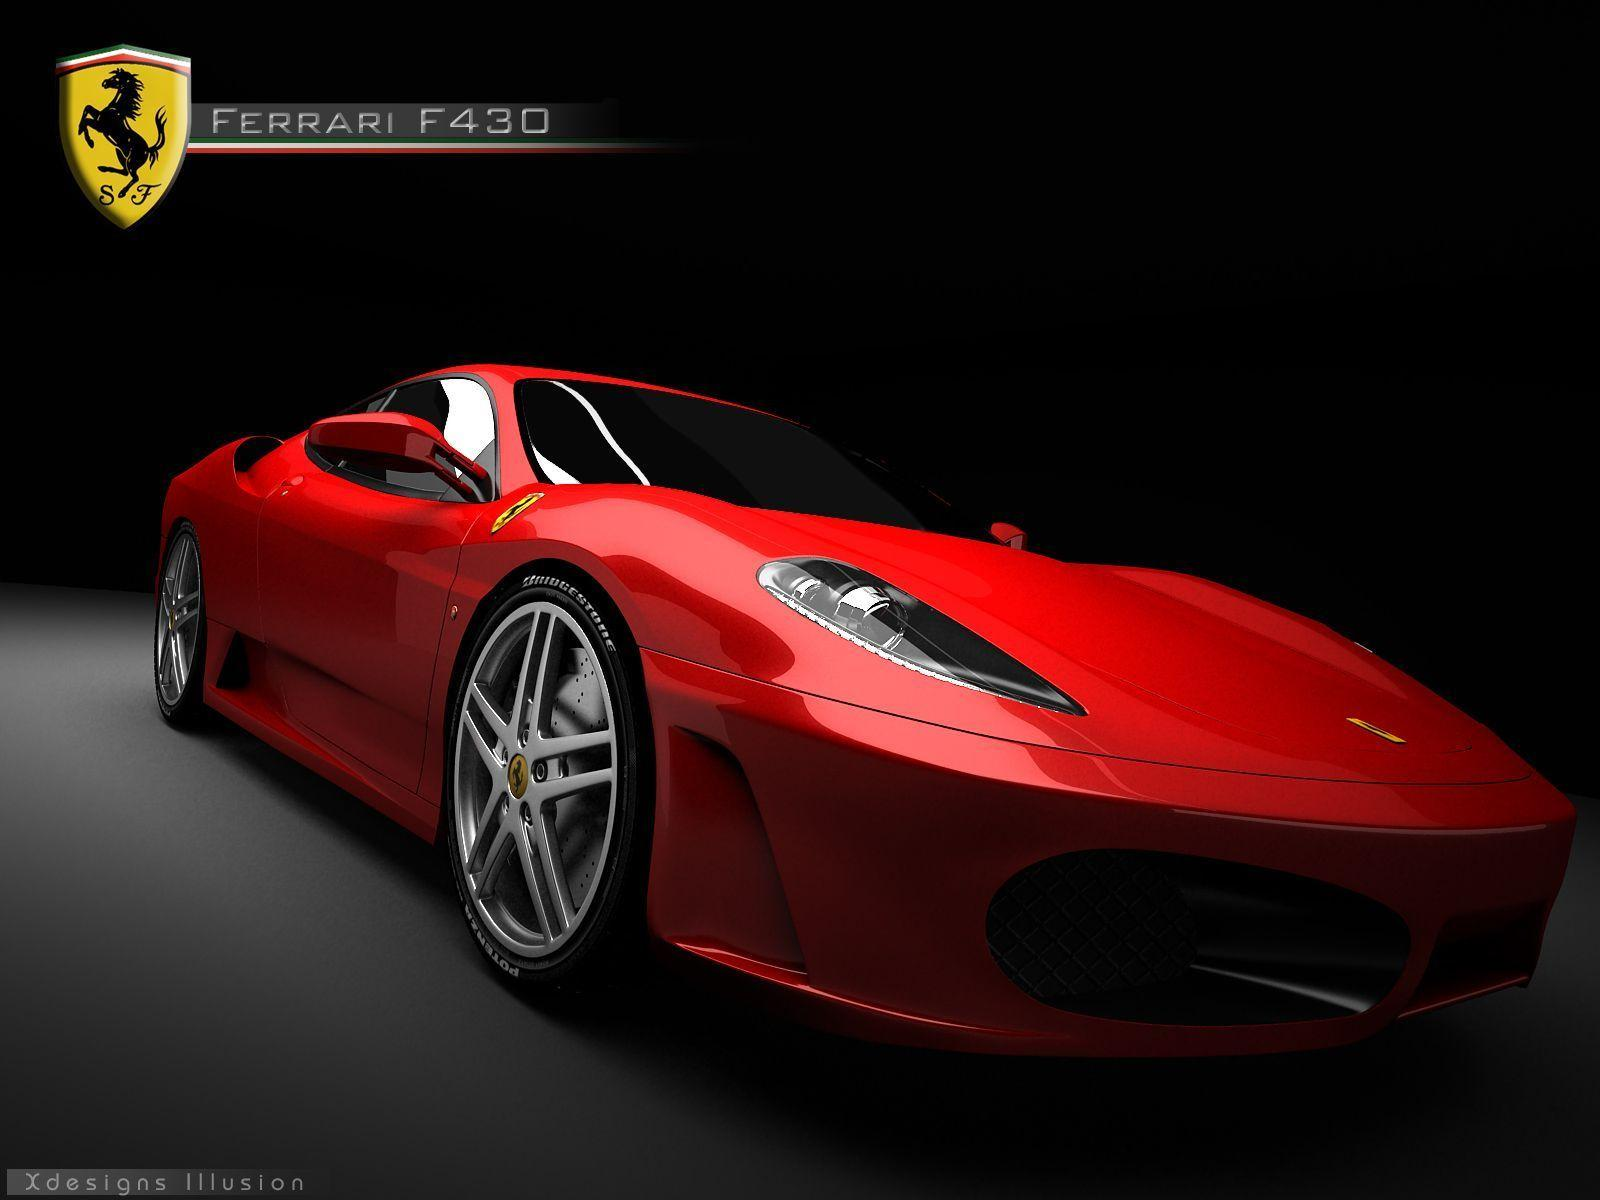 Ferrari F430 Wallpapers Image & Pictures